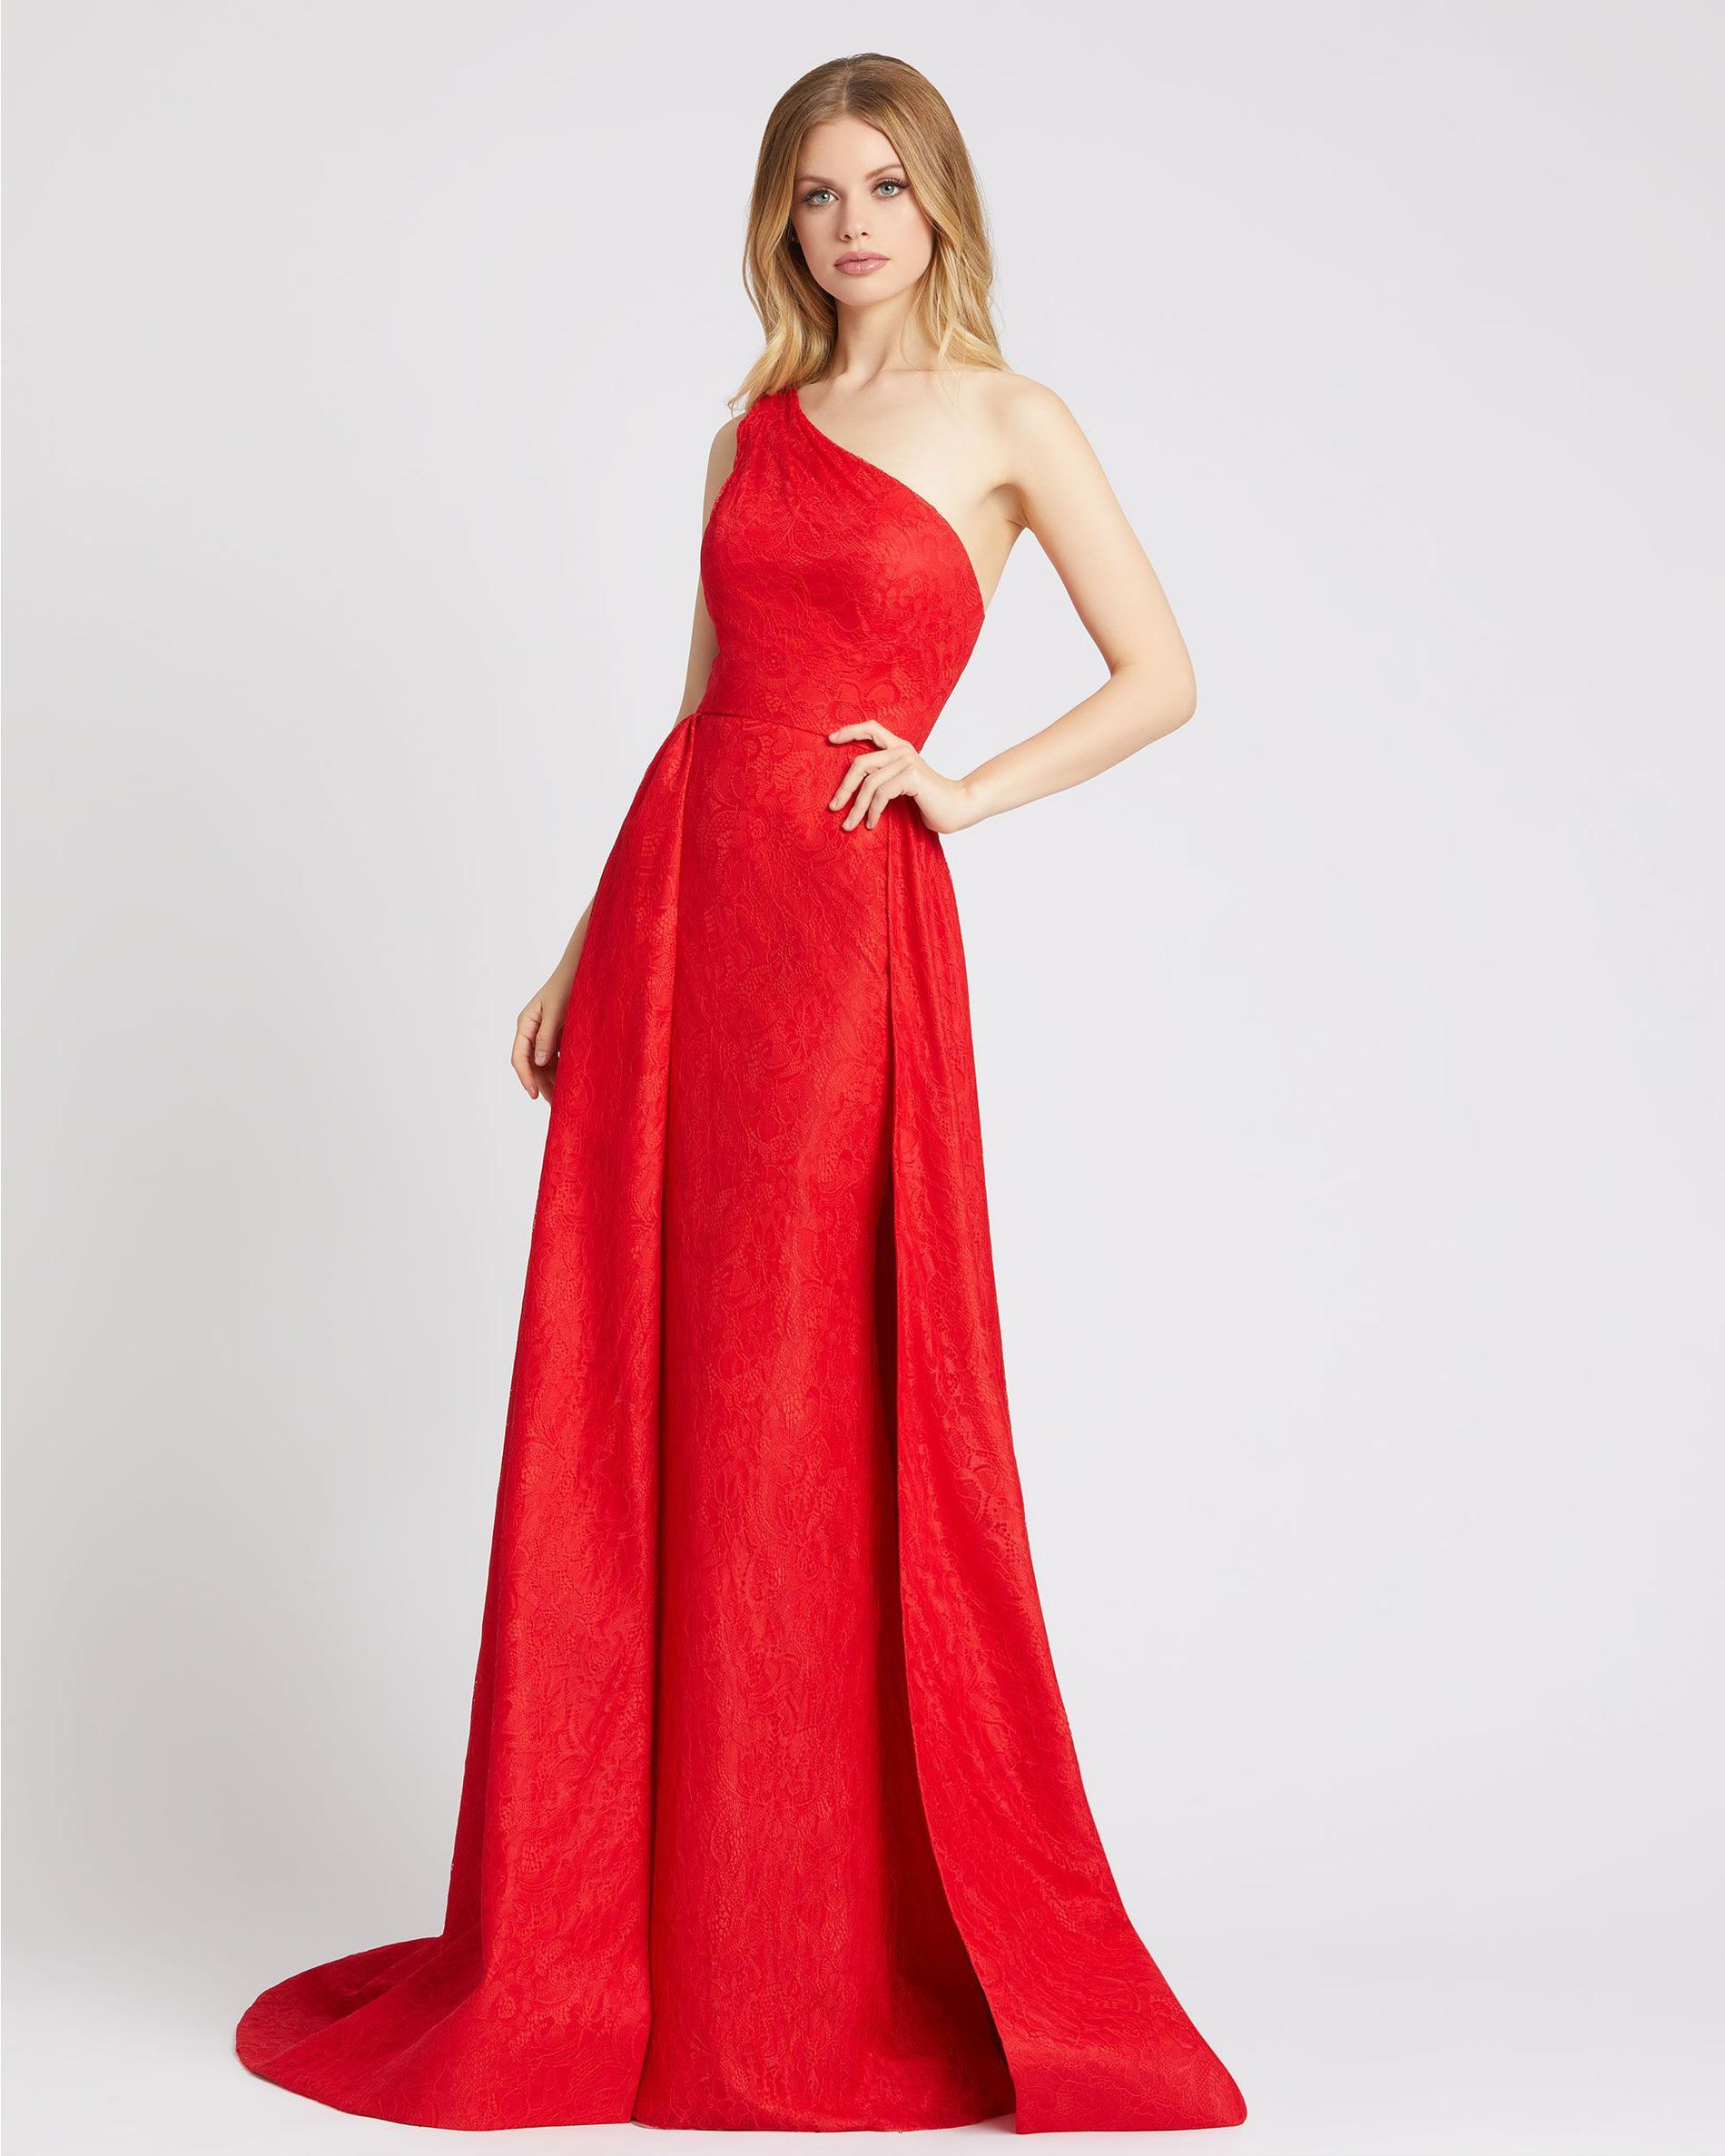 Style 12363 Mac Duggal Red Size 6 Pageant One Shoulder Tall Height A-line Dress on Queenly